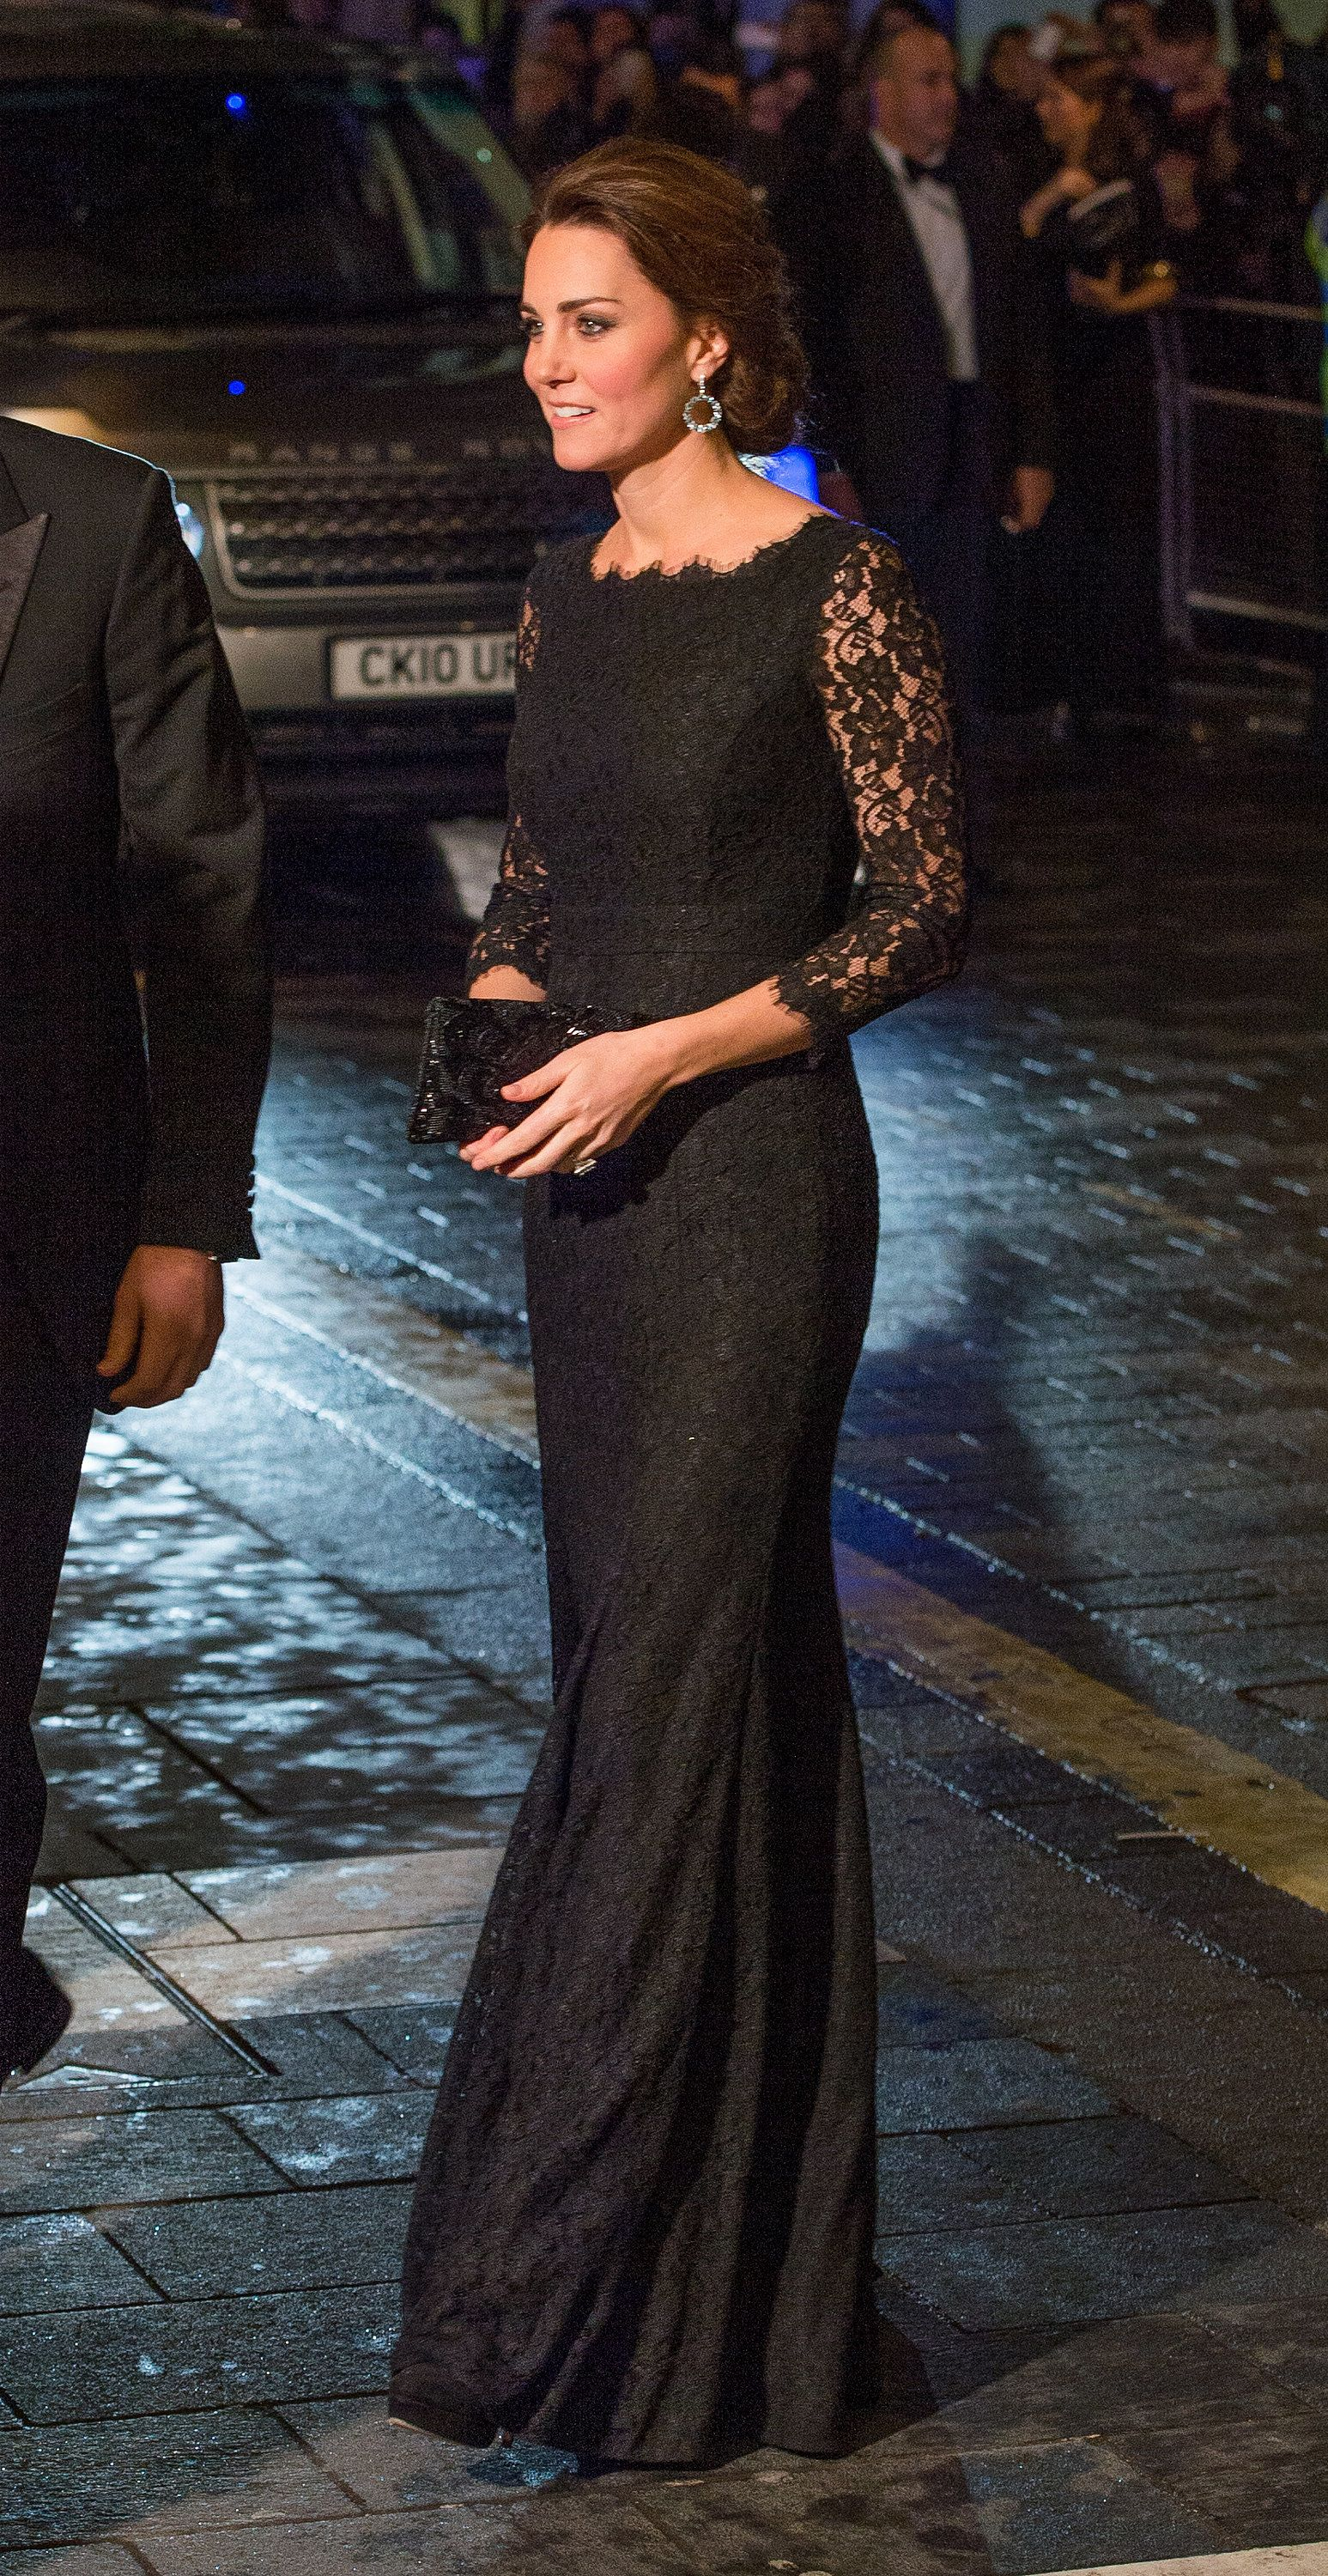 Lace ud pure elegance every time november royals and kate middleton